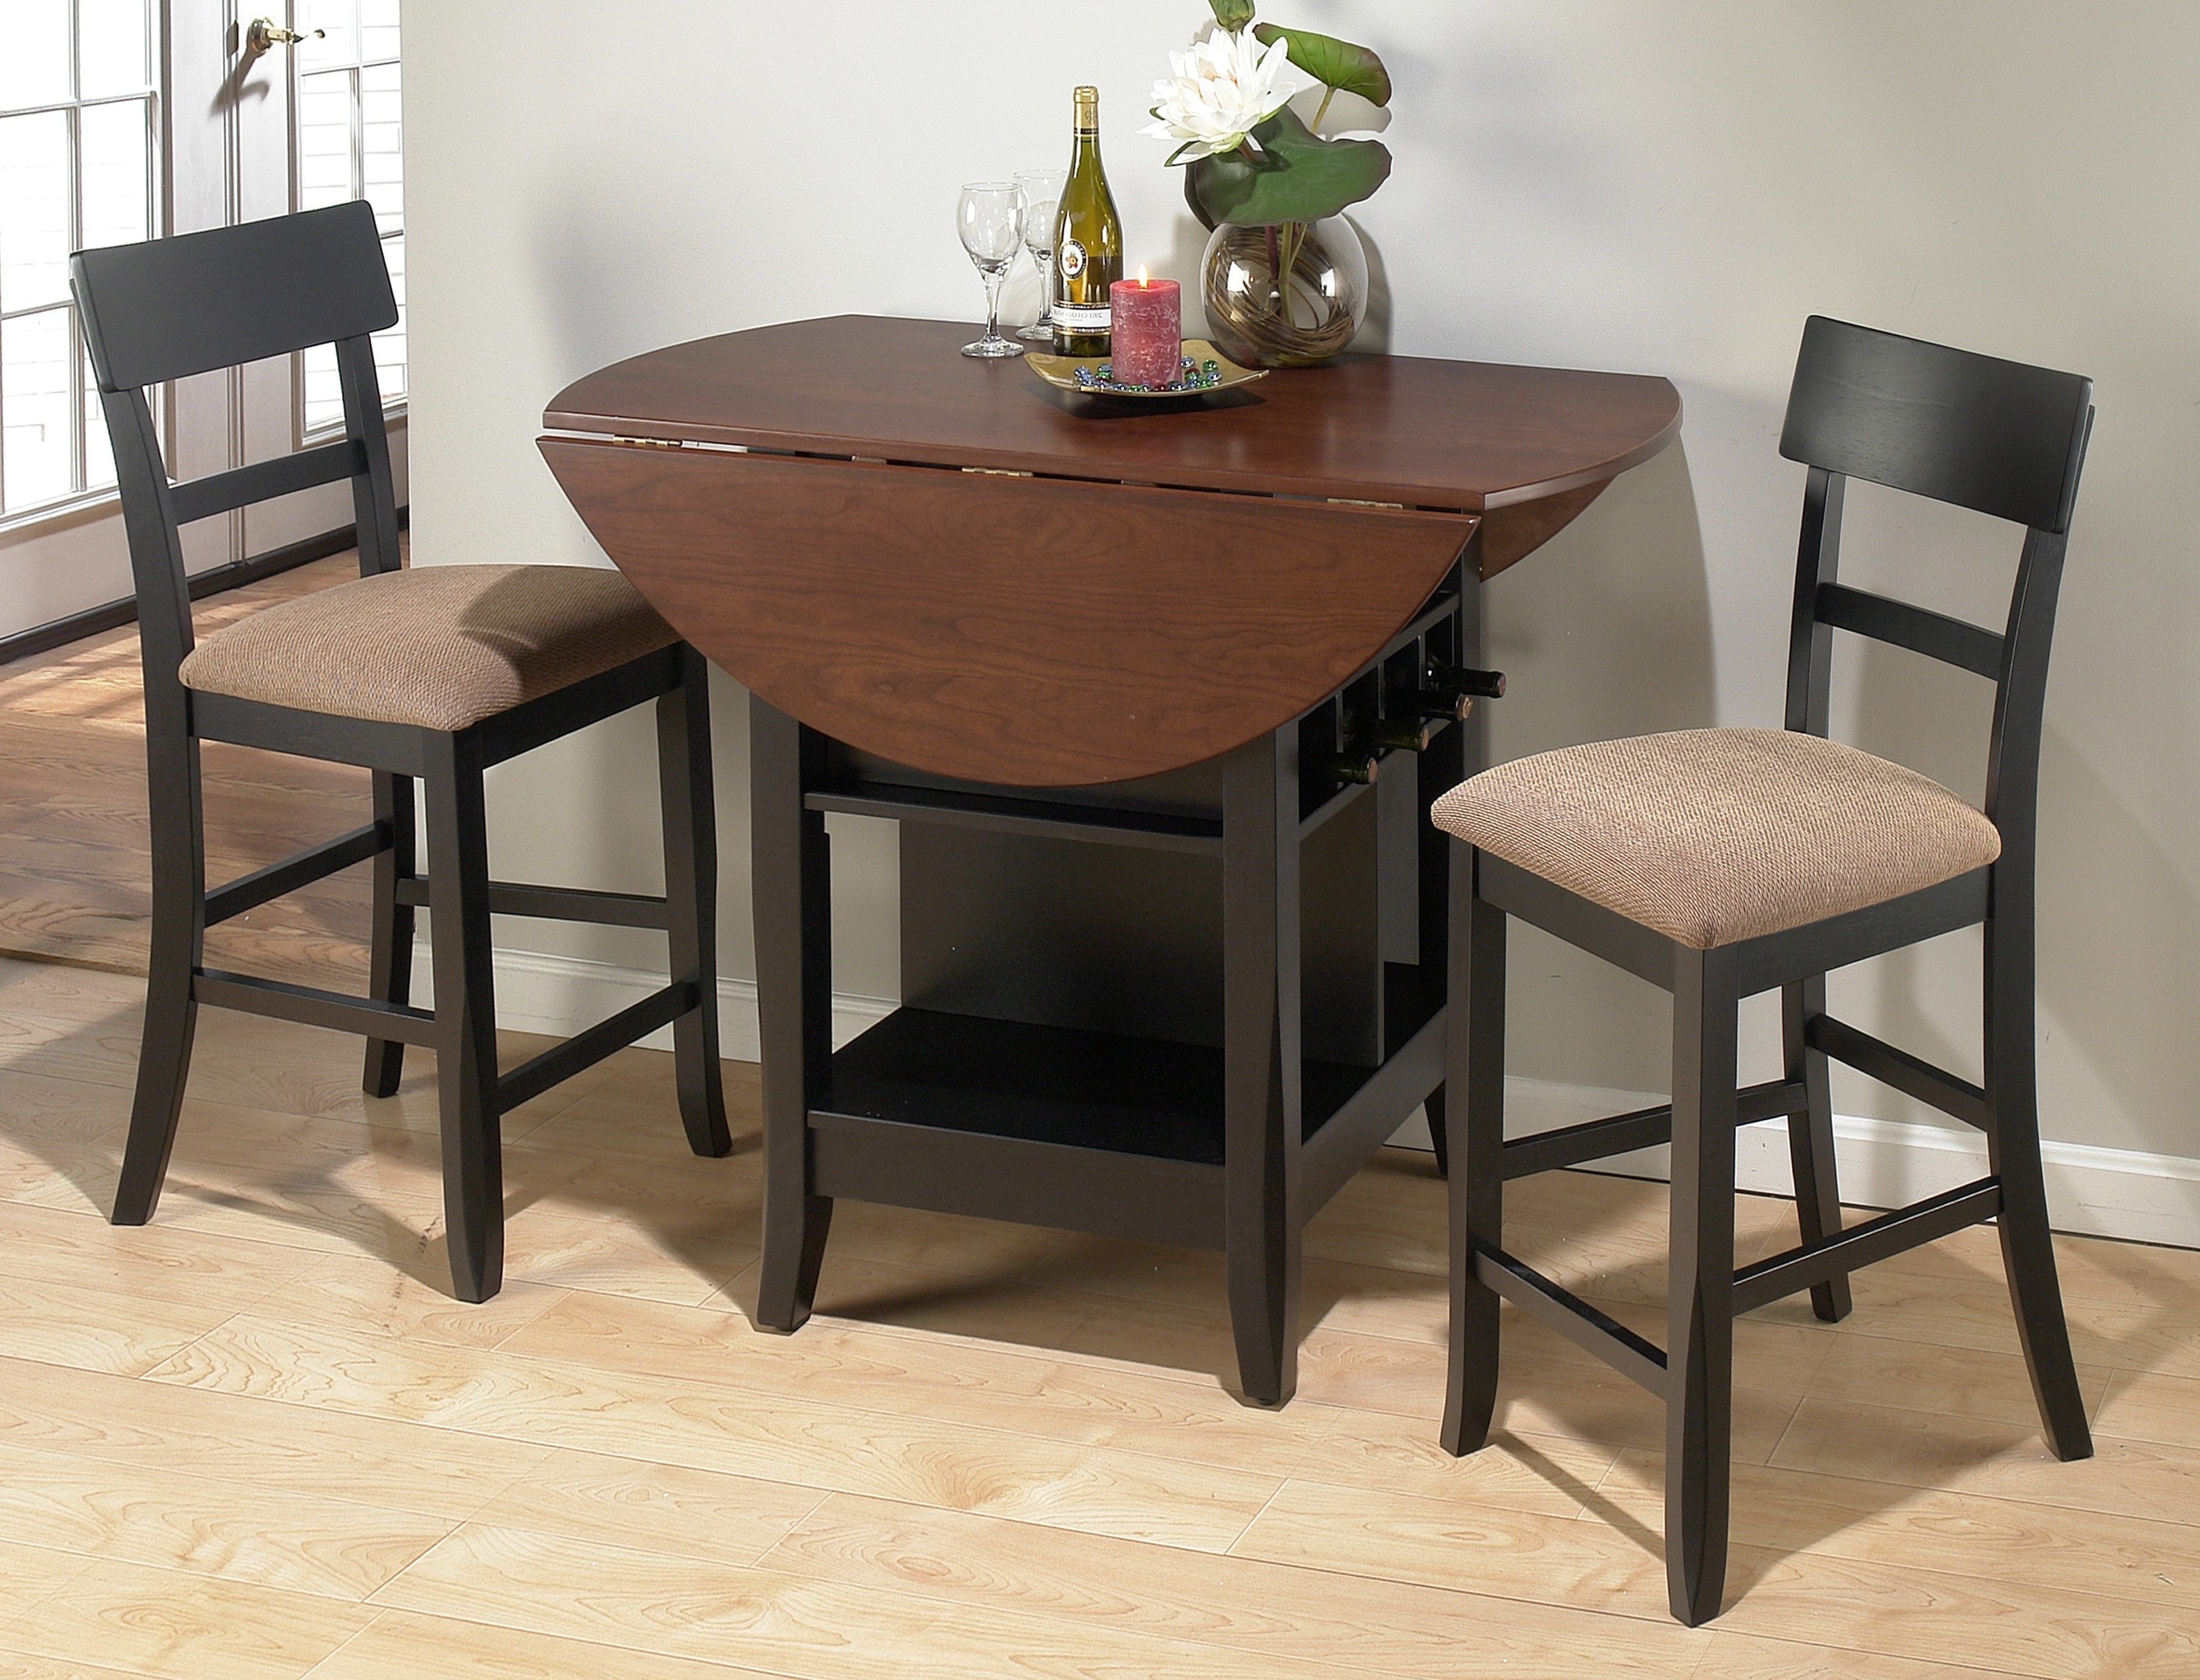 Small Dining Sets Regarding Newest Small Round Dining Table For 4 Fresh Square To Round Dining Table (View 20 of 25)